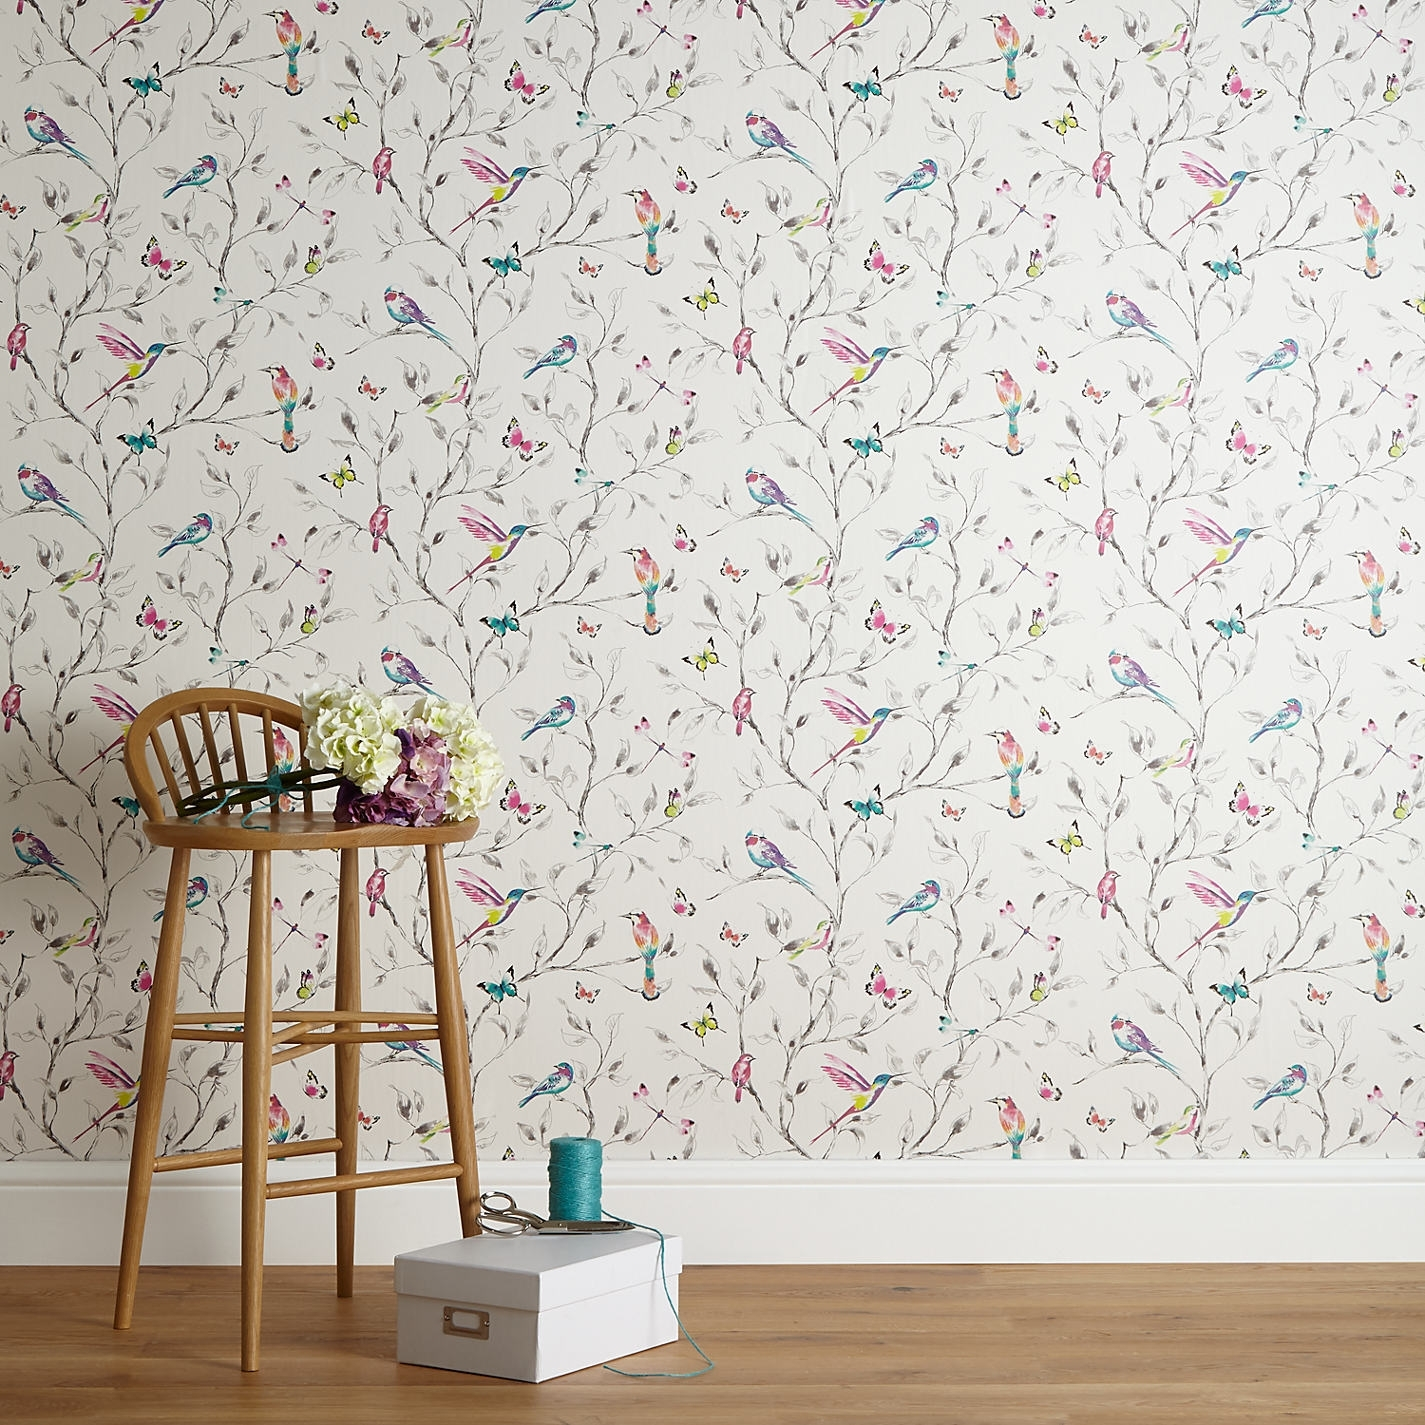 John Lewis Wallpapers – Lyhyxx For Newest John Lewis Abstract Wall Art (View 15 of 20)